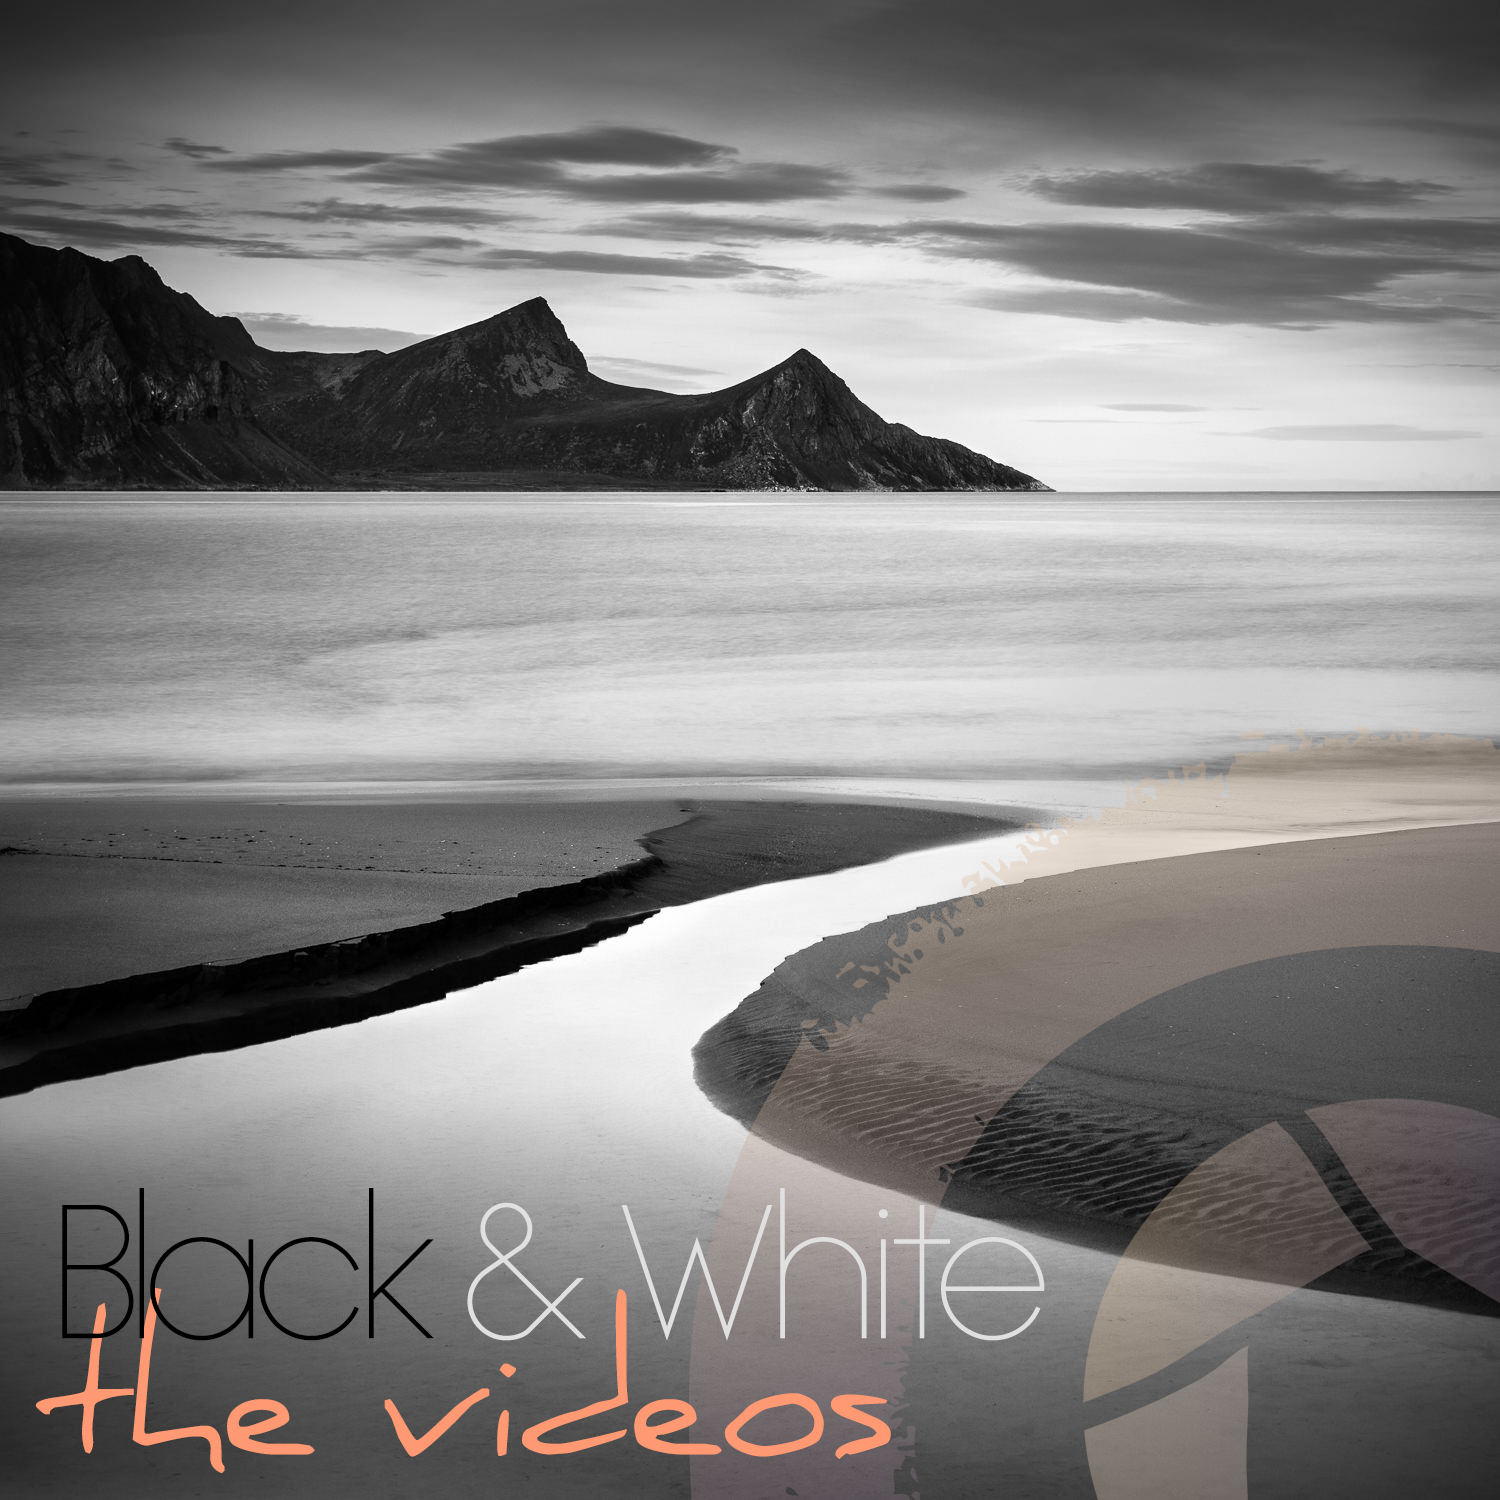 Digital Black & White Landscape Photography_the videos_Thumbnail.jpg